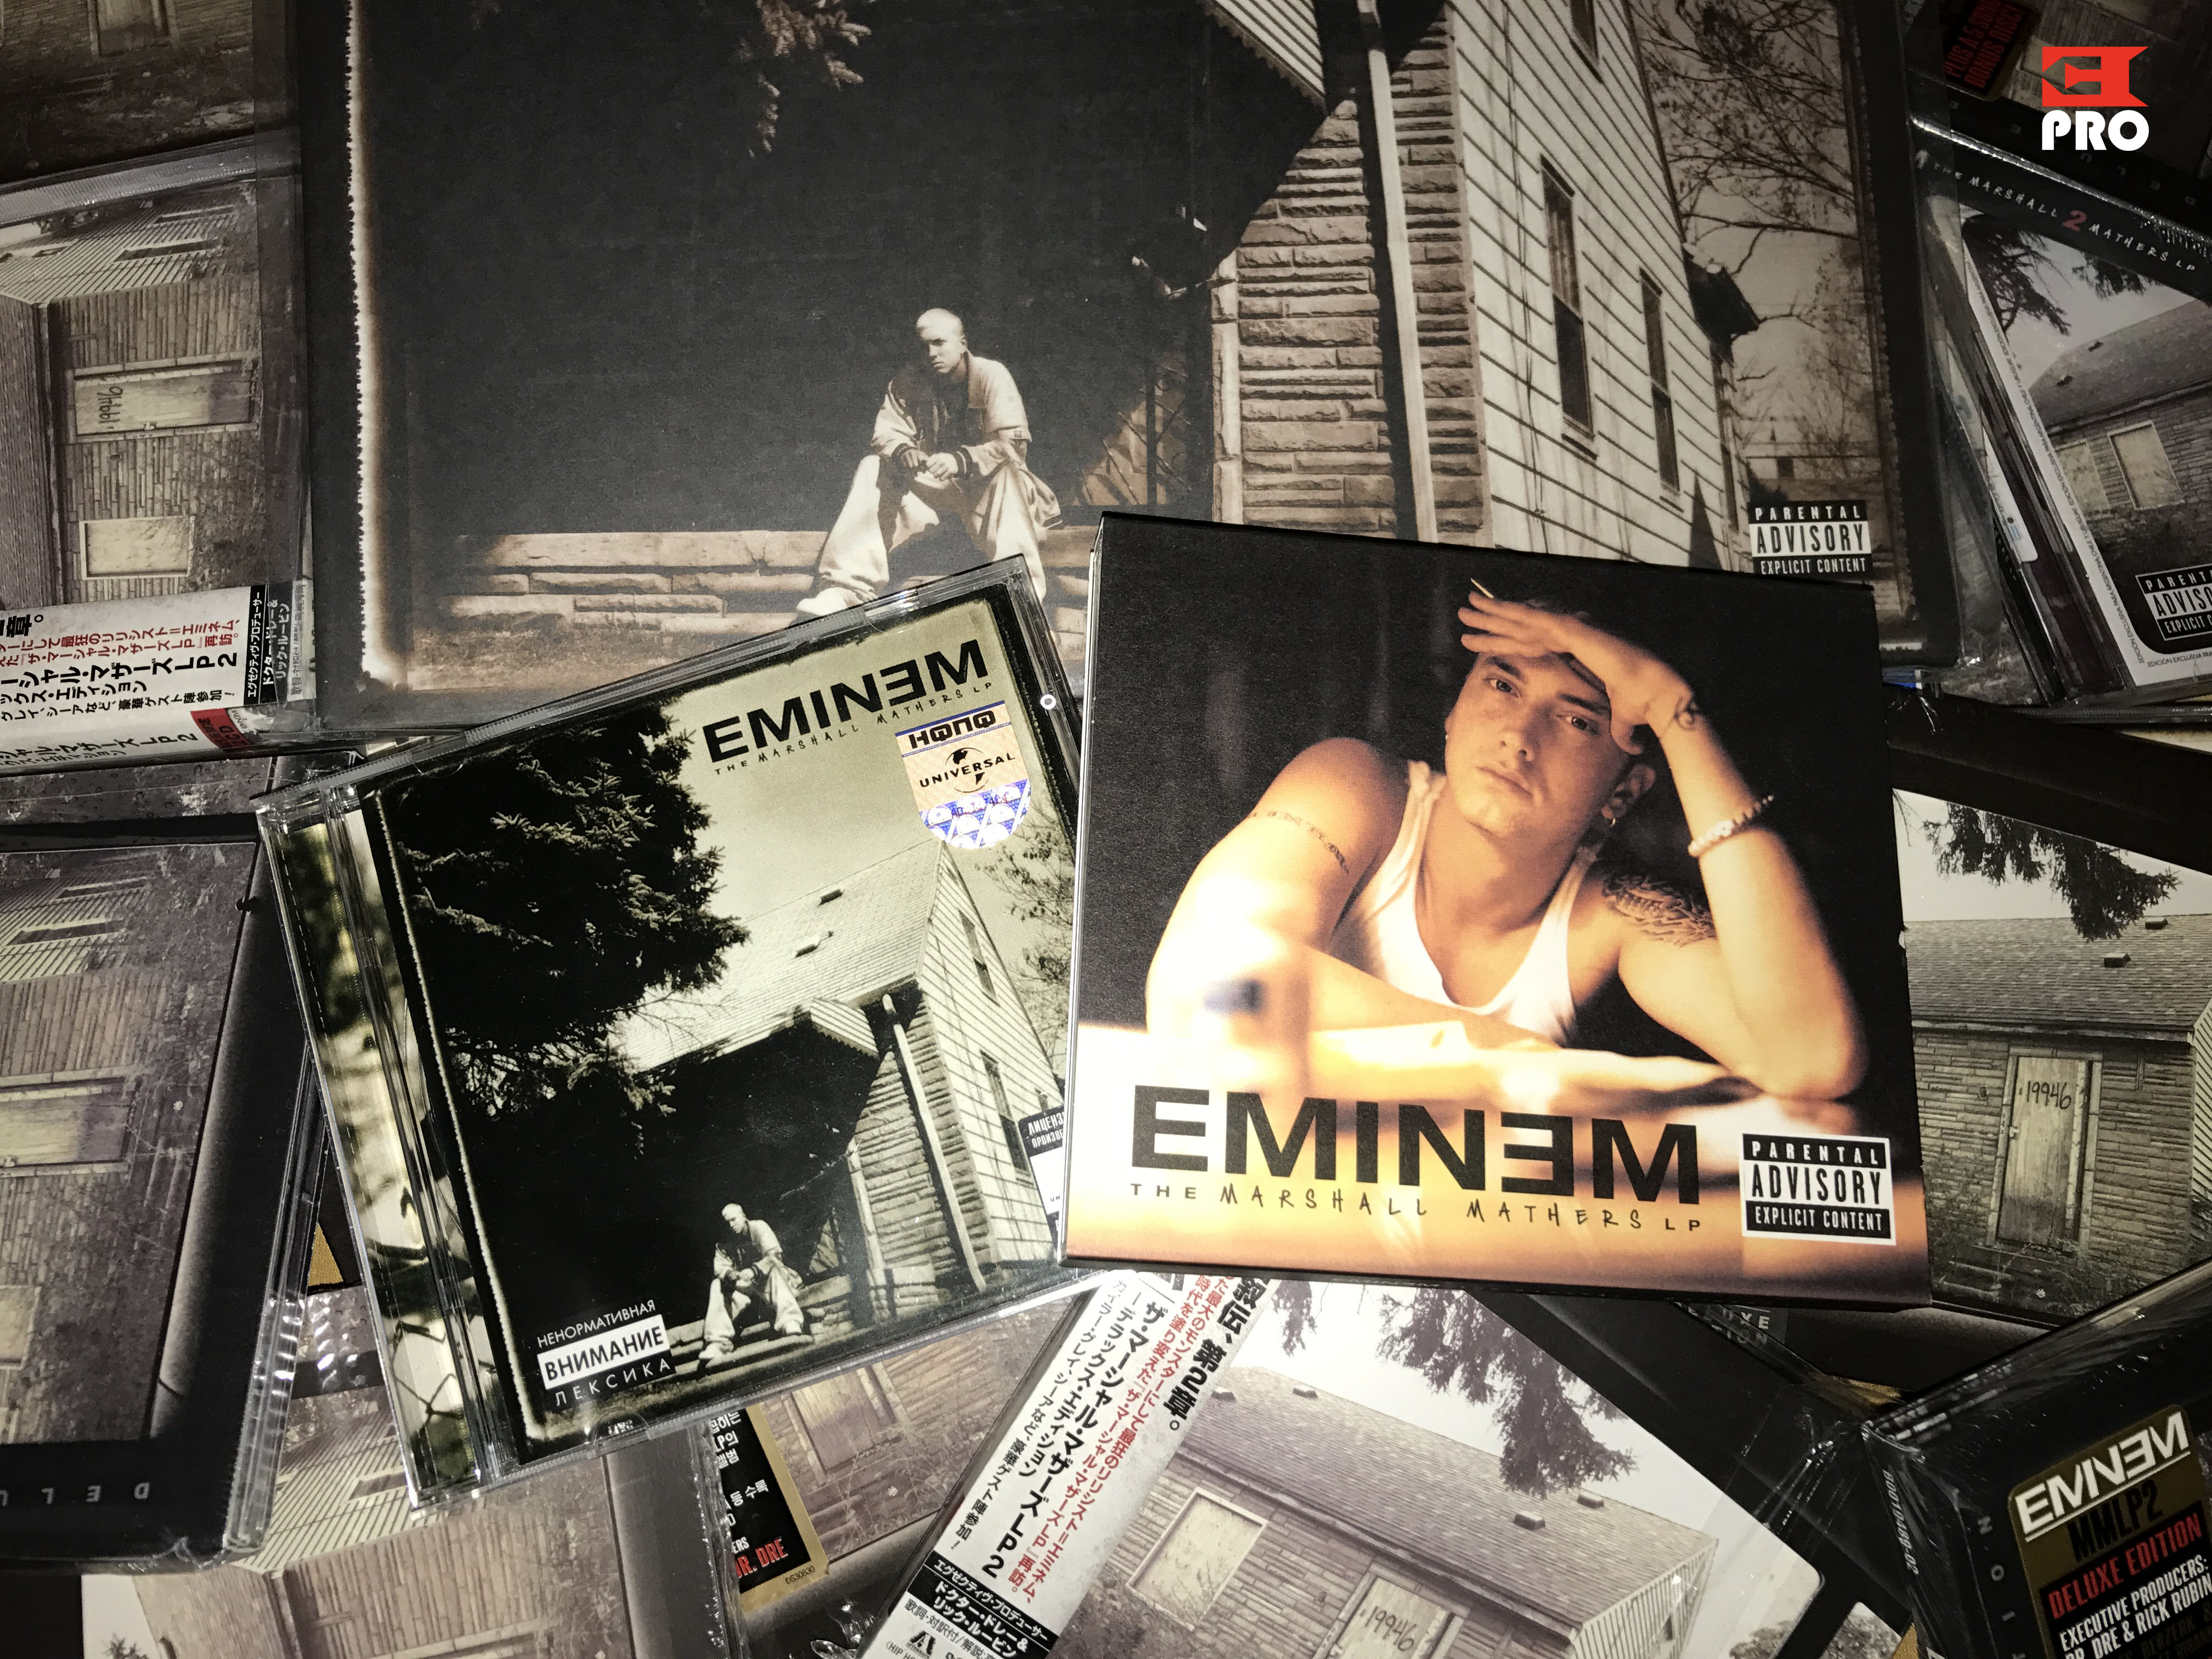 Exactly 17 years ago, May 23, 2000, Eminem released the album